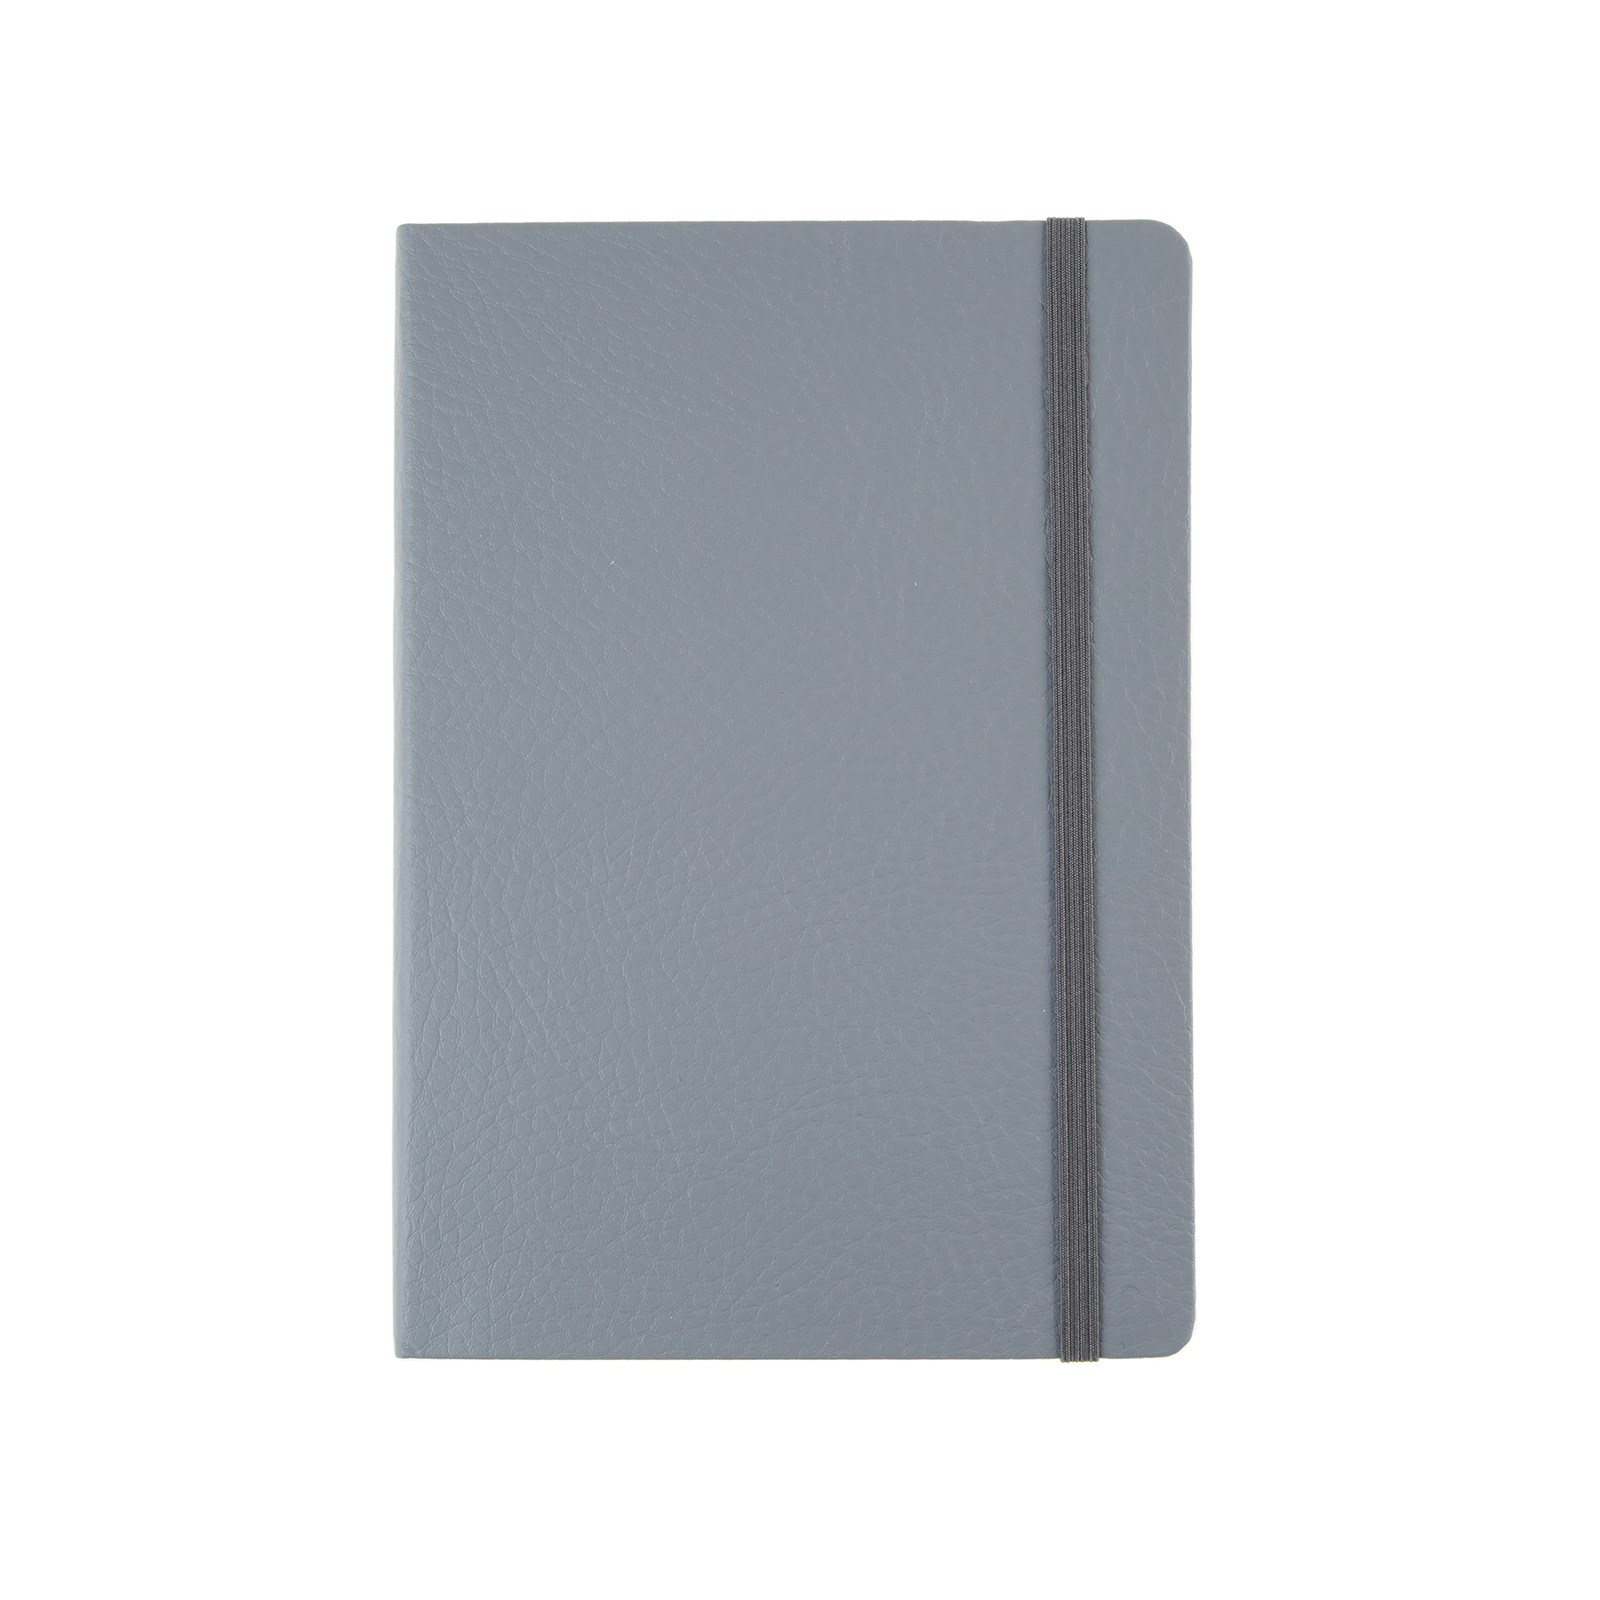 Collins B6 Ruled Notebook - Steel